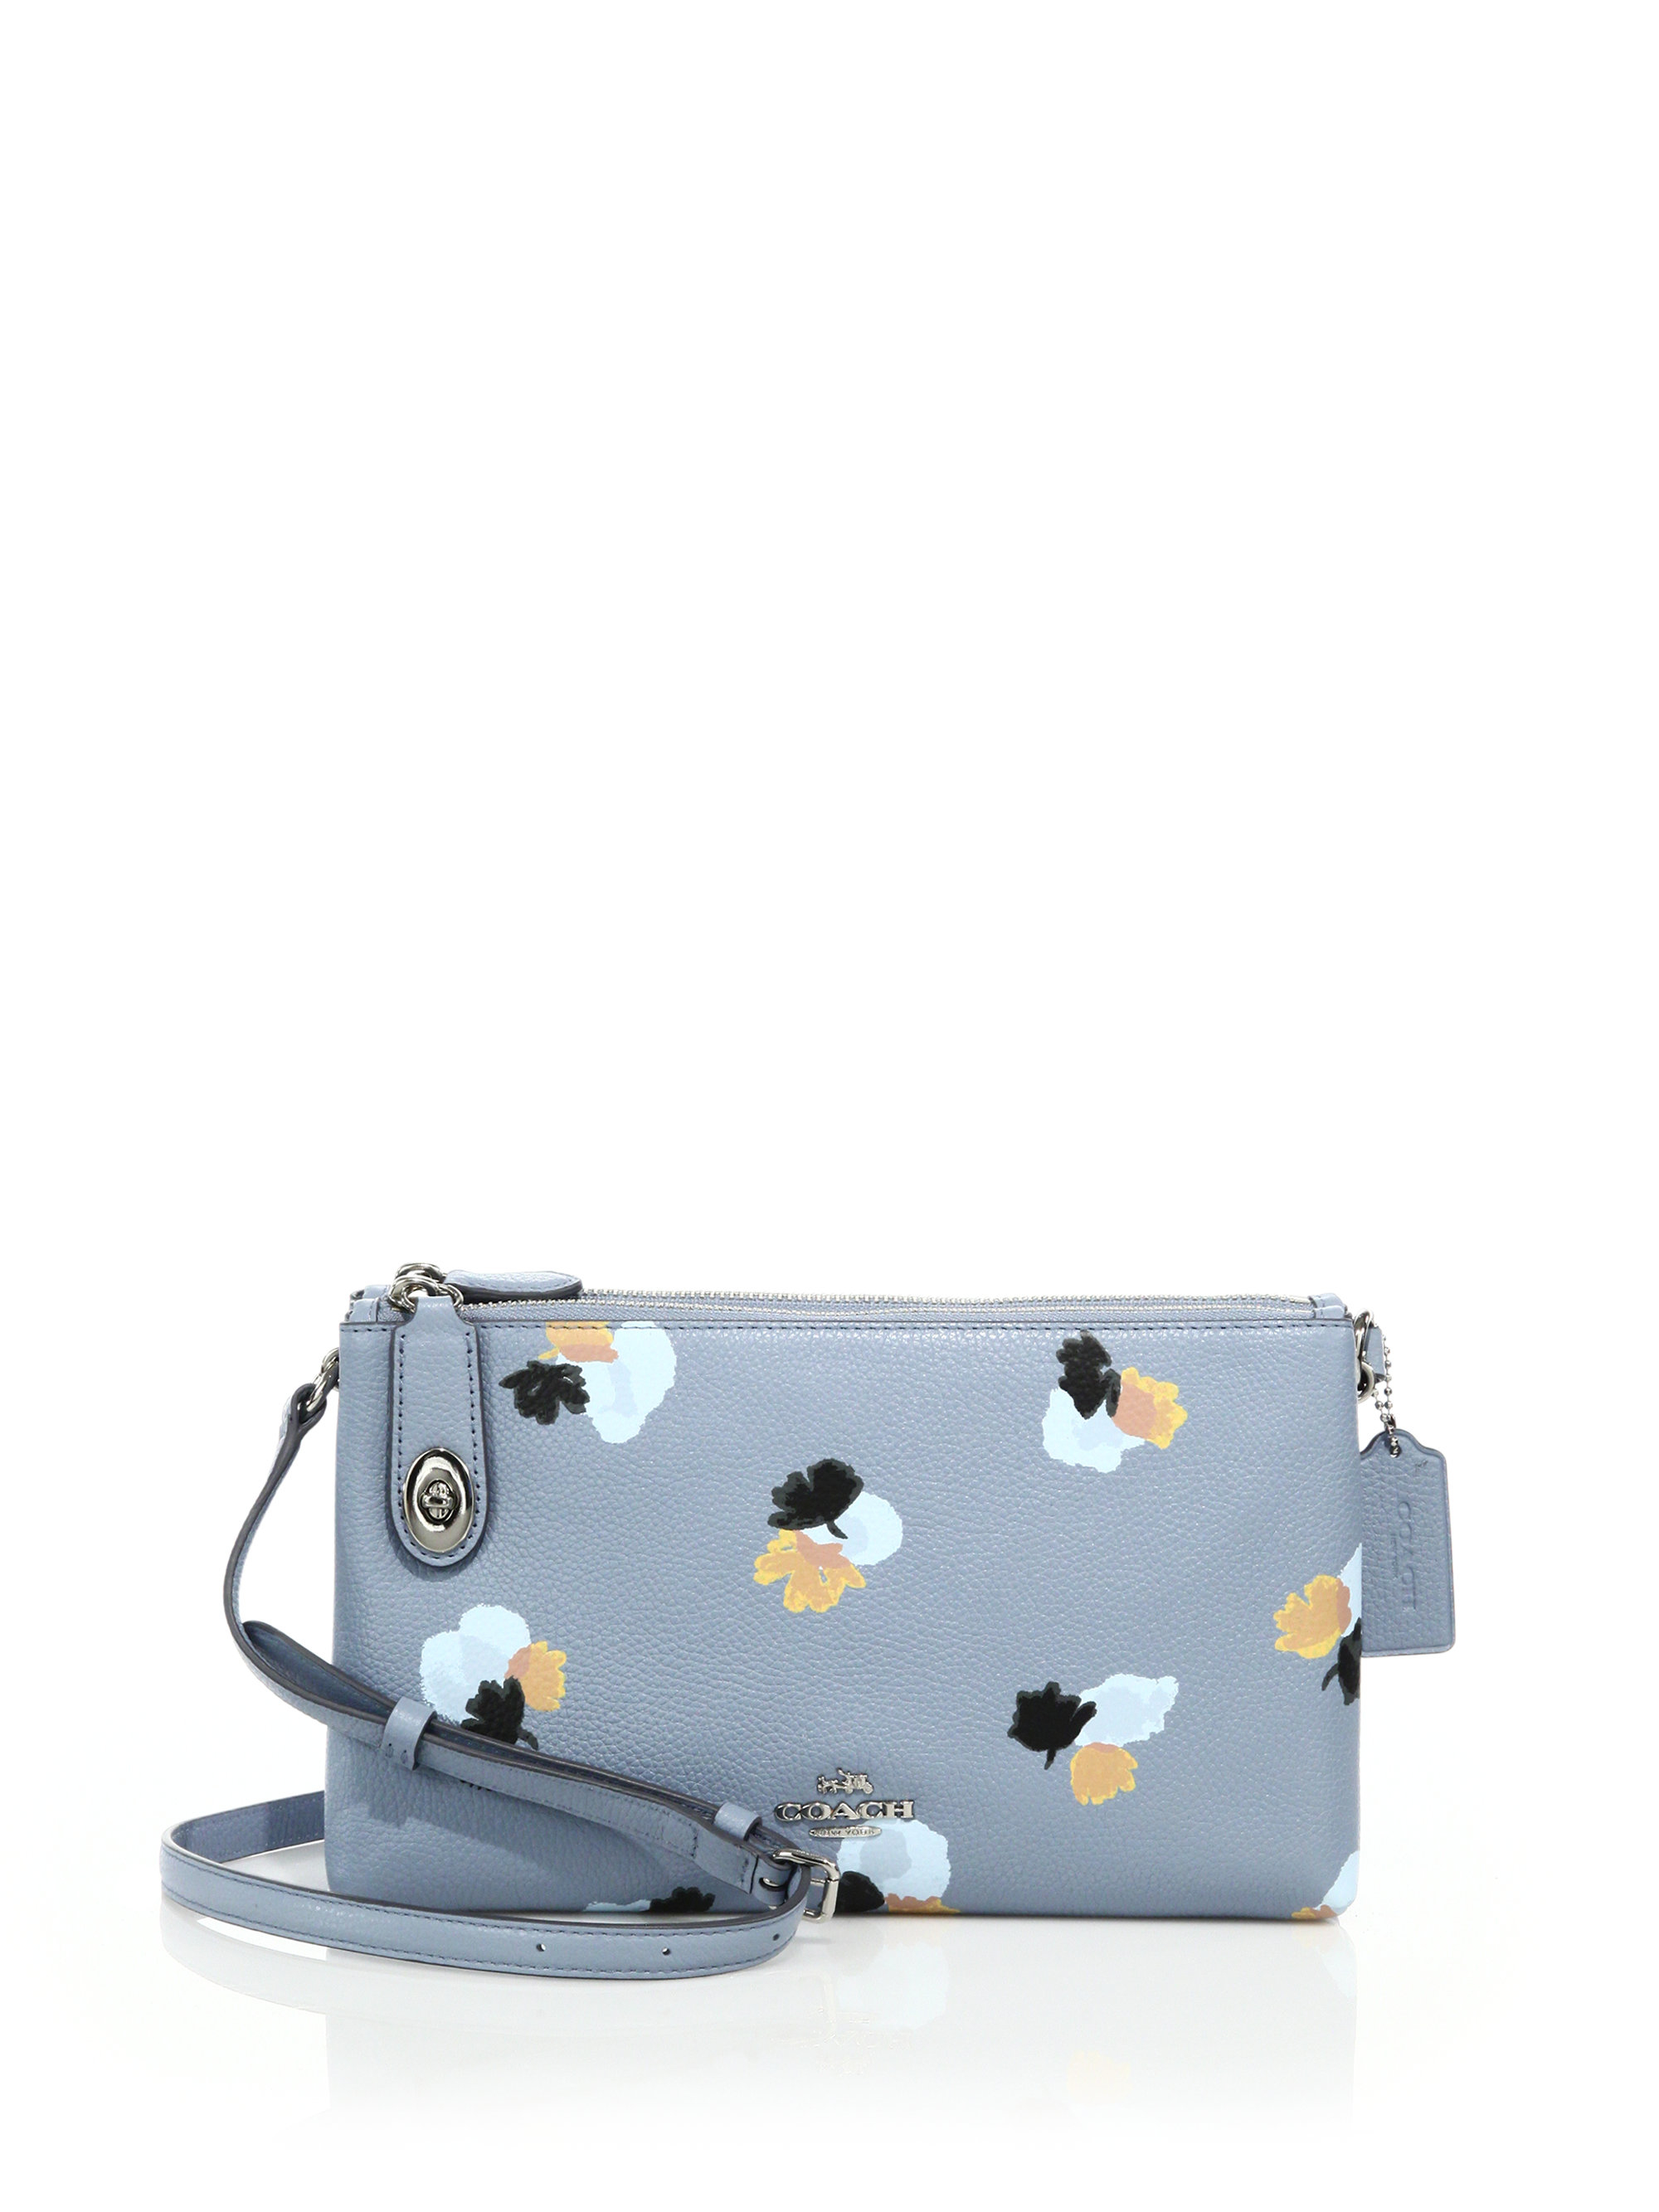 Lyst - Coach Crosby Floral-print Leather Crossbody Bag In Blue